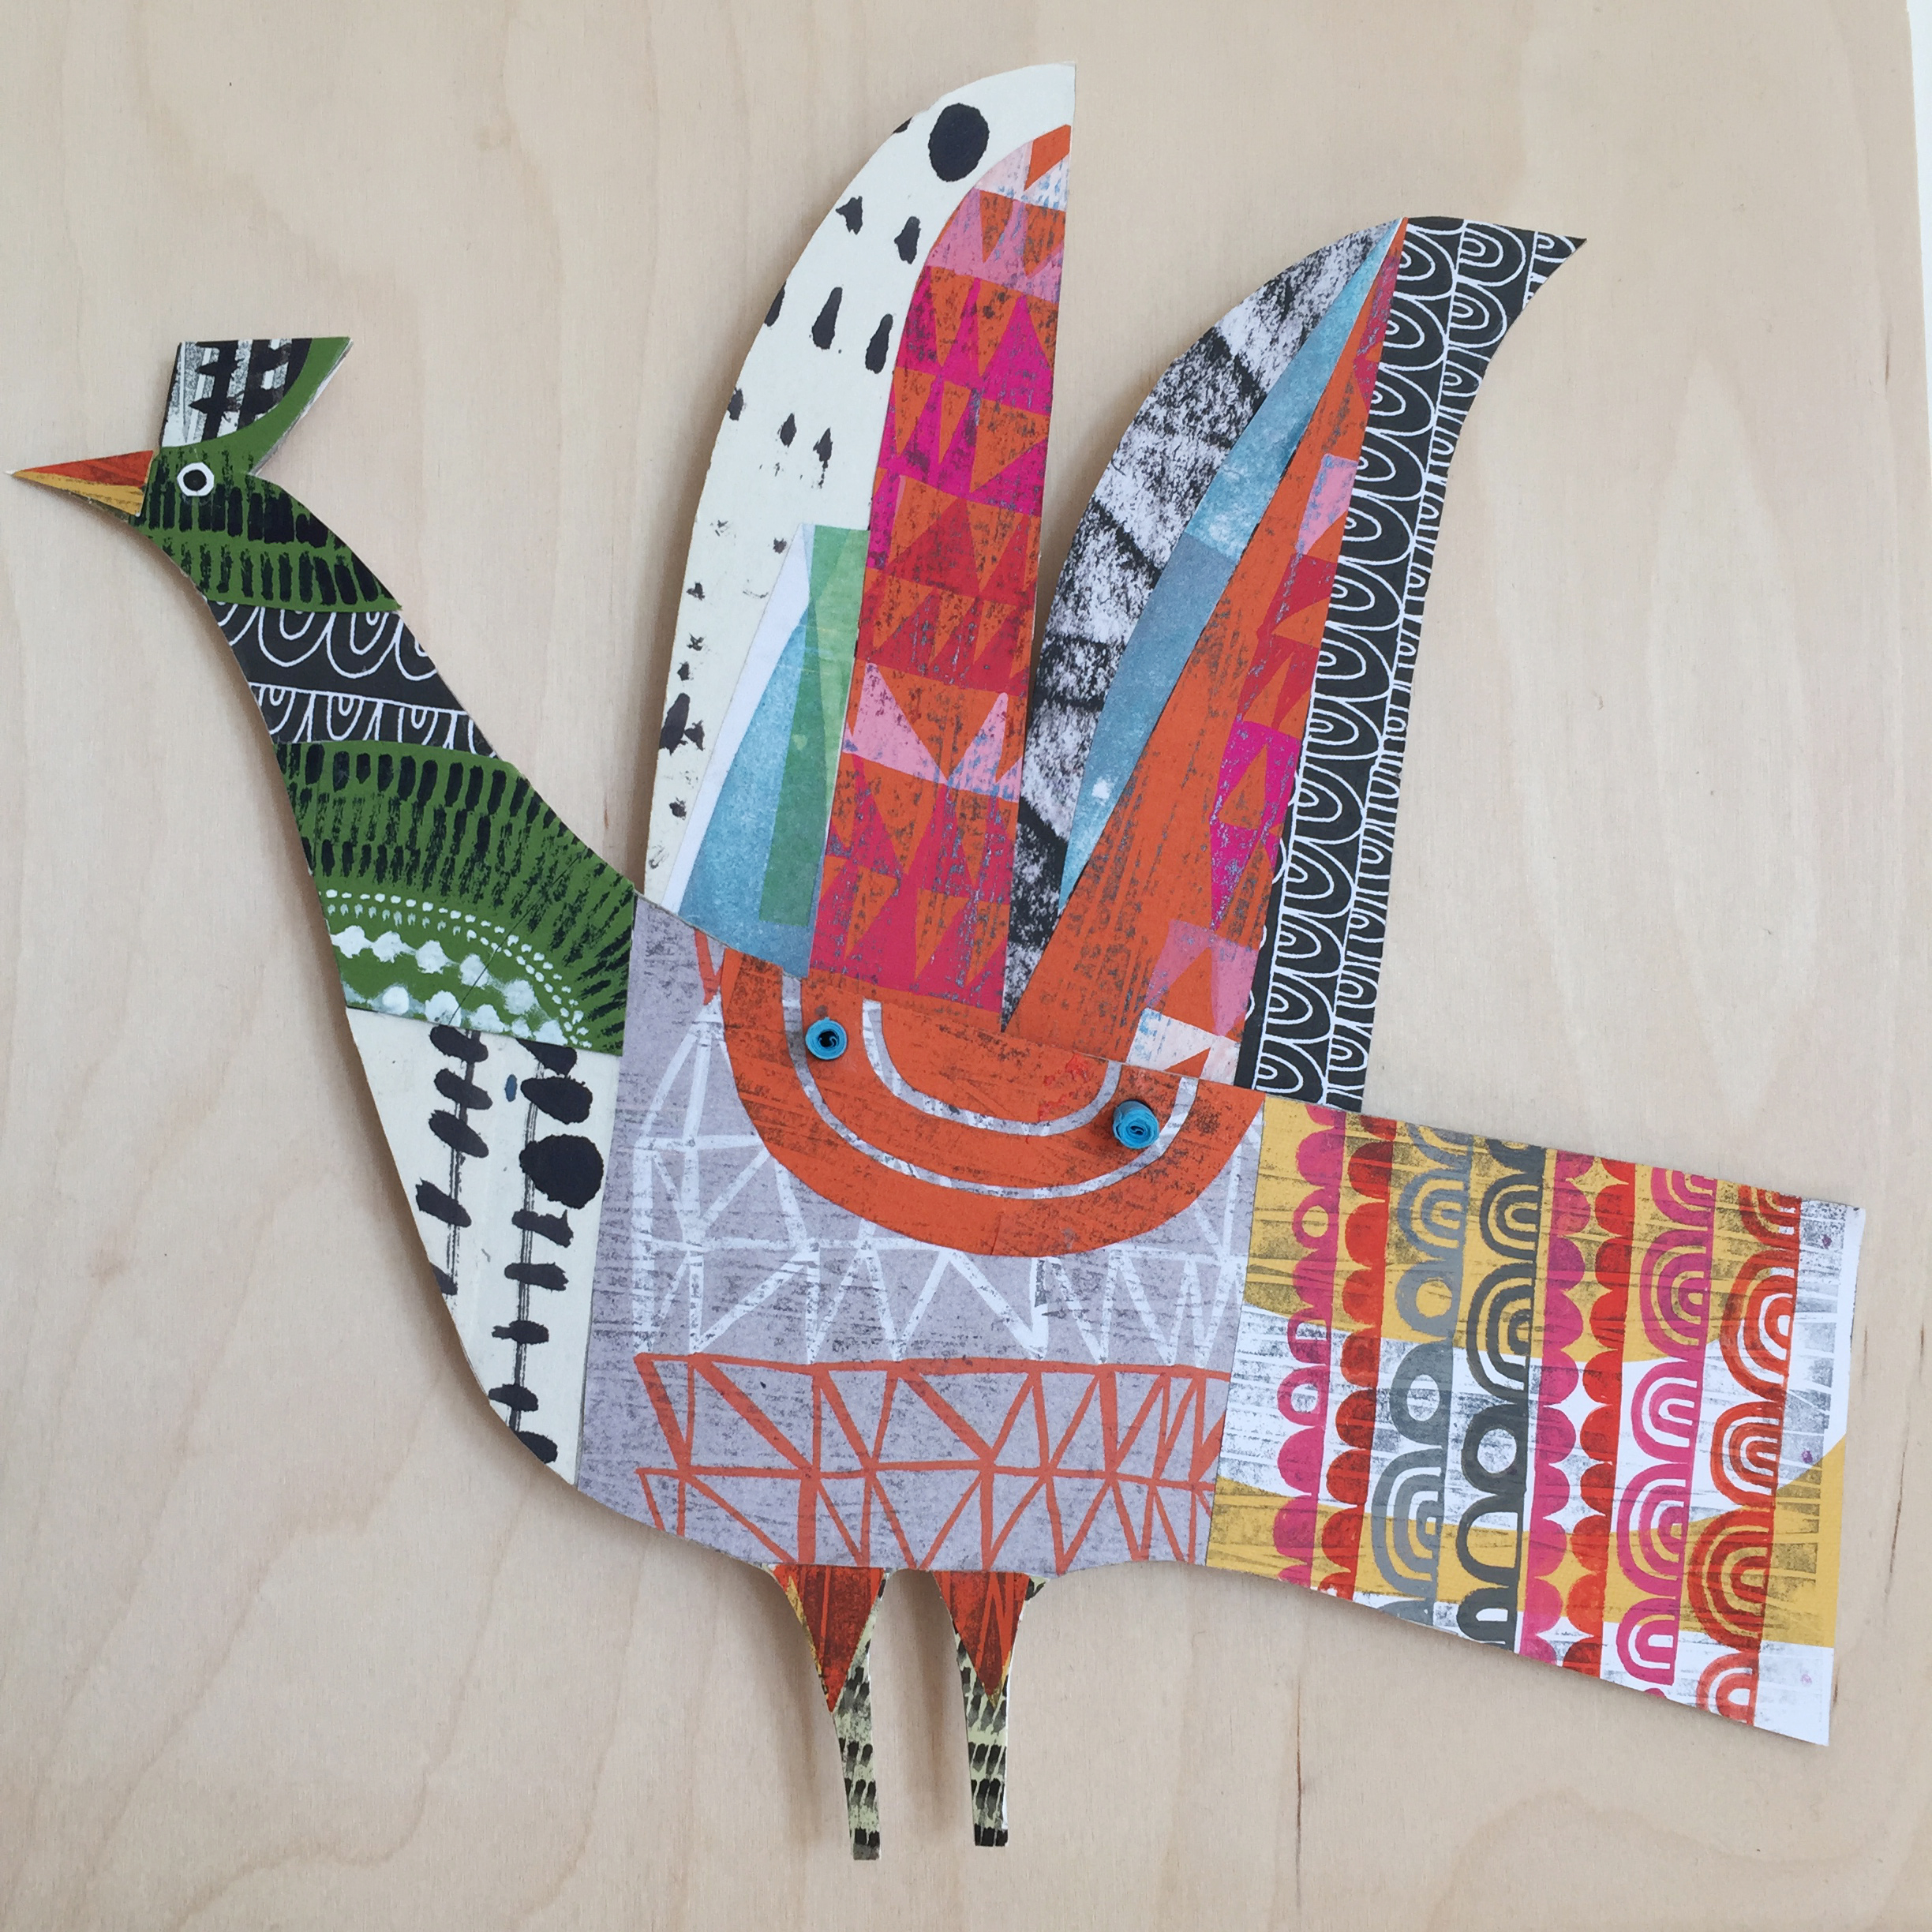 mythical bird   original cut out articulated collage. commissions taken